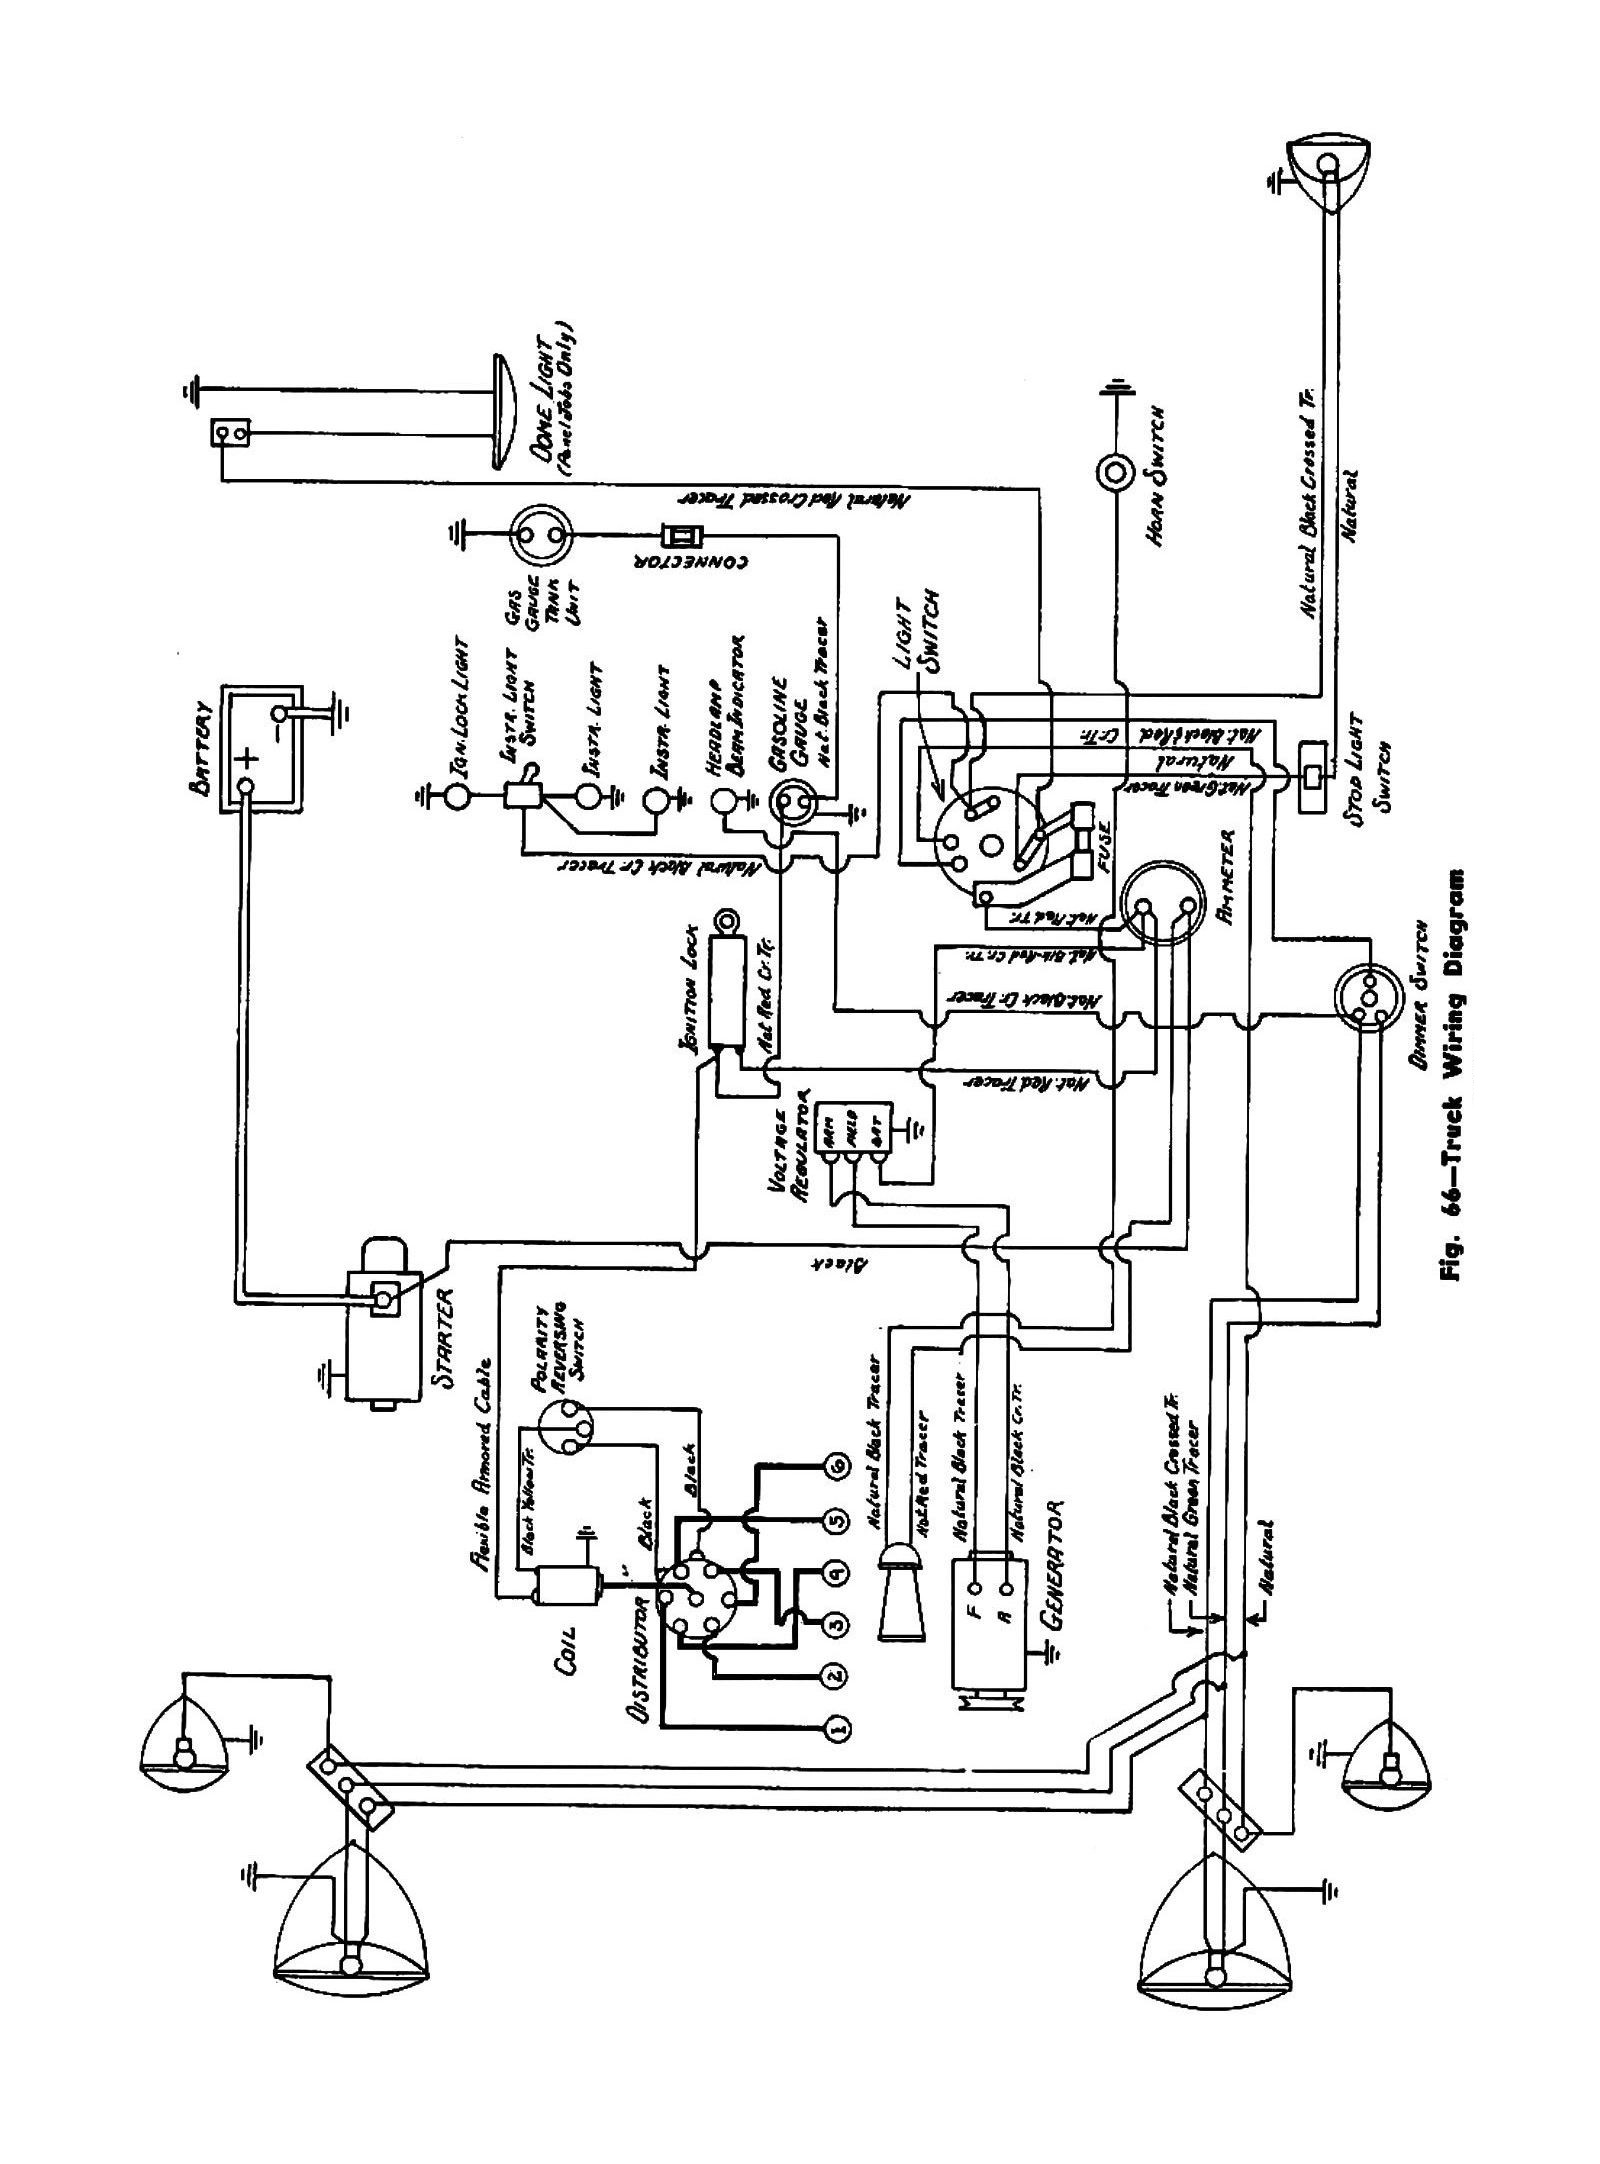 box wiring sterling diagram truck 04fuse circuit diagram symbols \u2022 2001 sterling wiring diagrams fantastic triumph motorcycle wiring diagram motif electrical rh piotomar info sterling truck heater diagram 2005 sterling